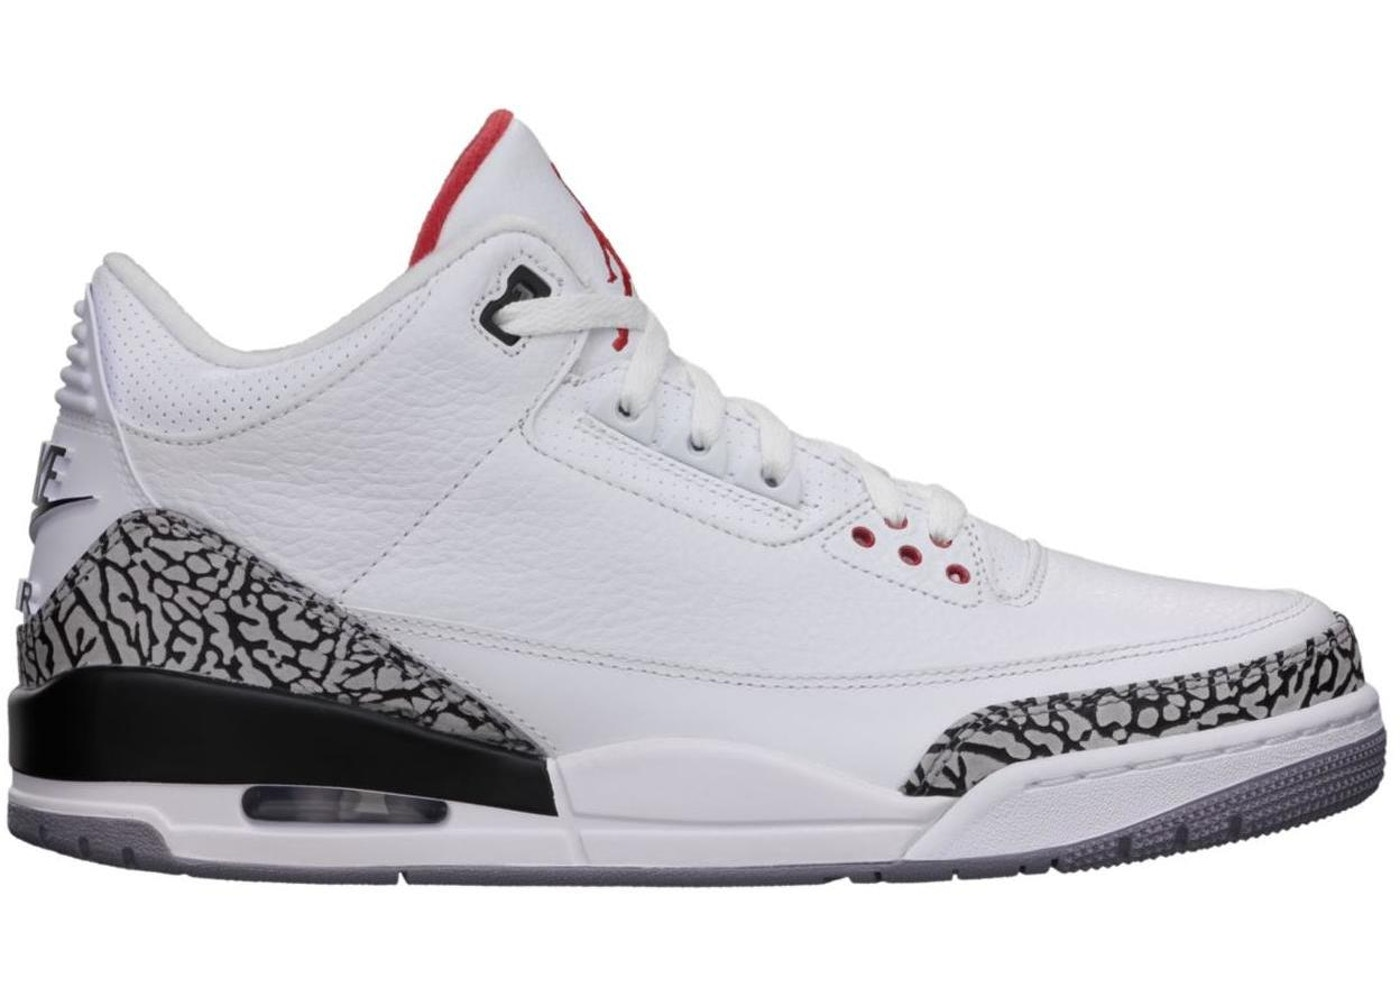 1b1a4011ef5b Buy Air Jordan 3 Shoes   Deadstock Sneakers